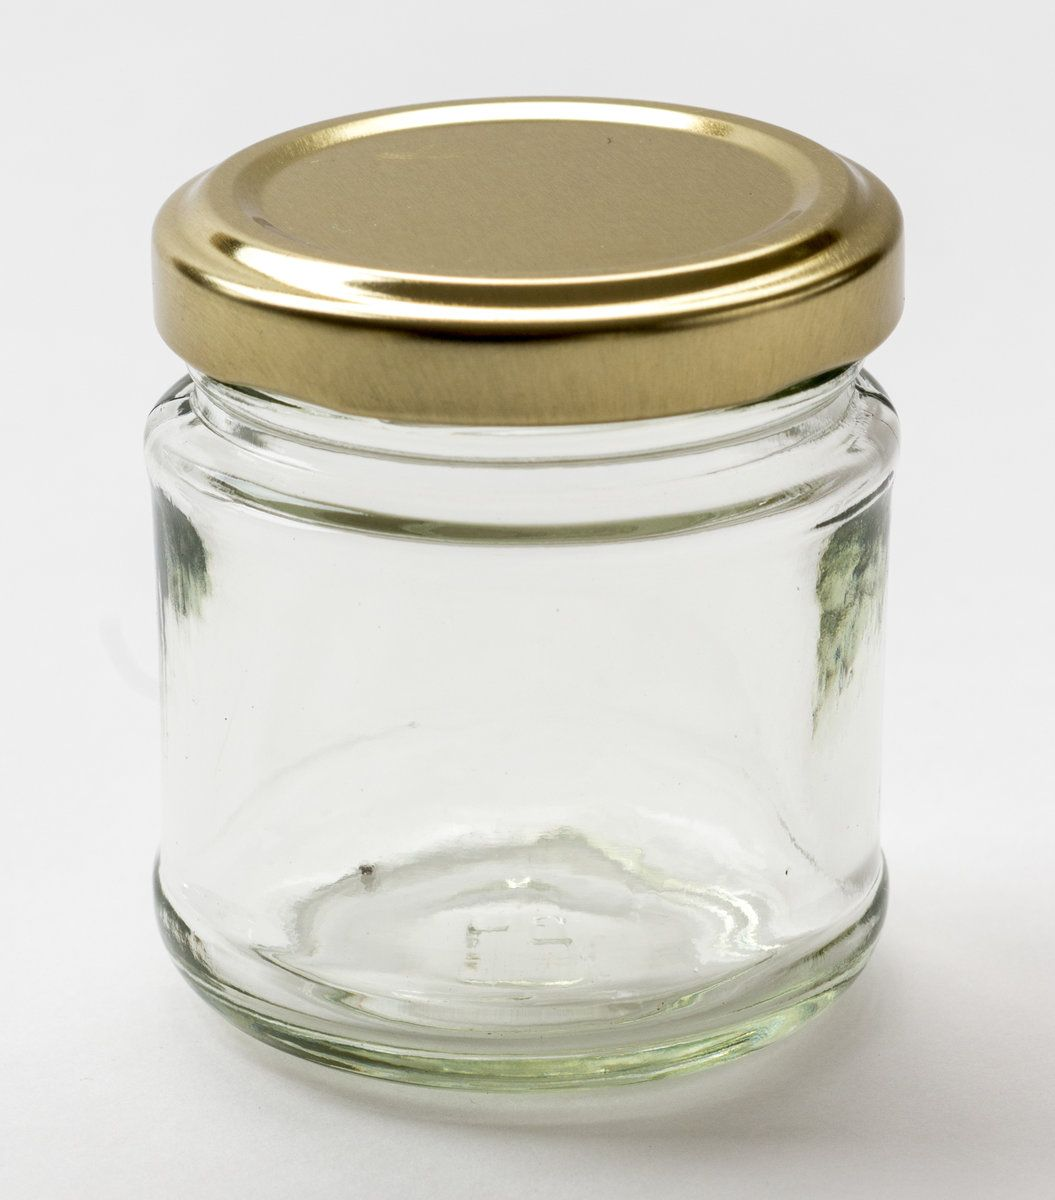 Nutley\'s 100ml Small Glass Jam Jars - Gold Lids. Perfect for home ...